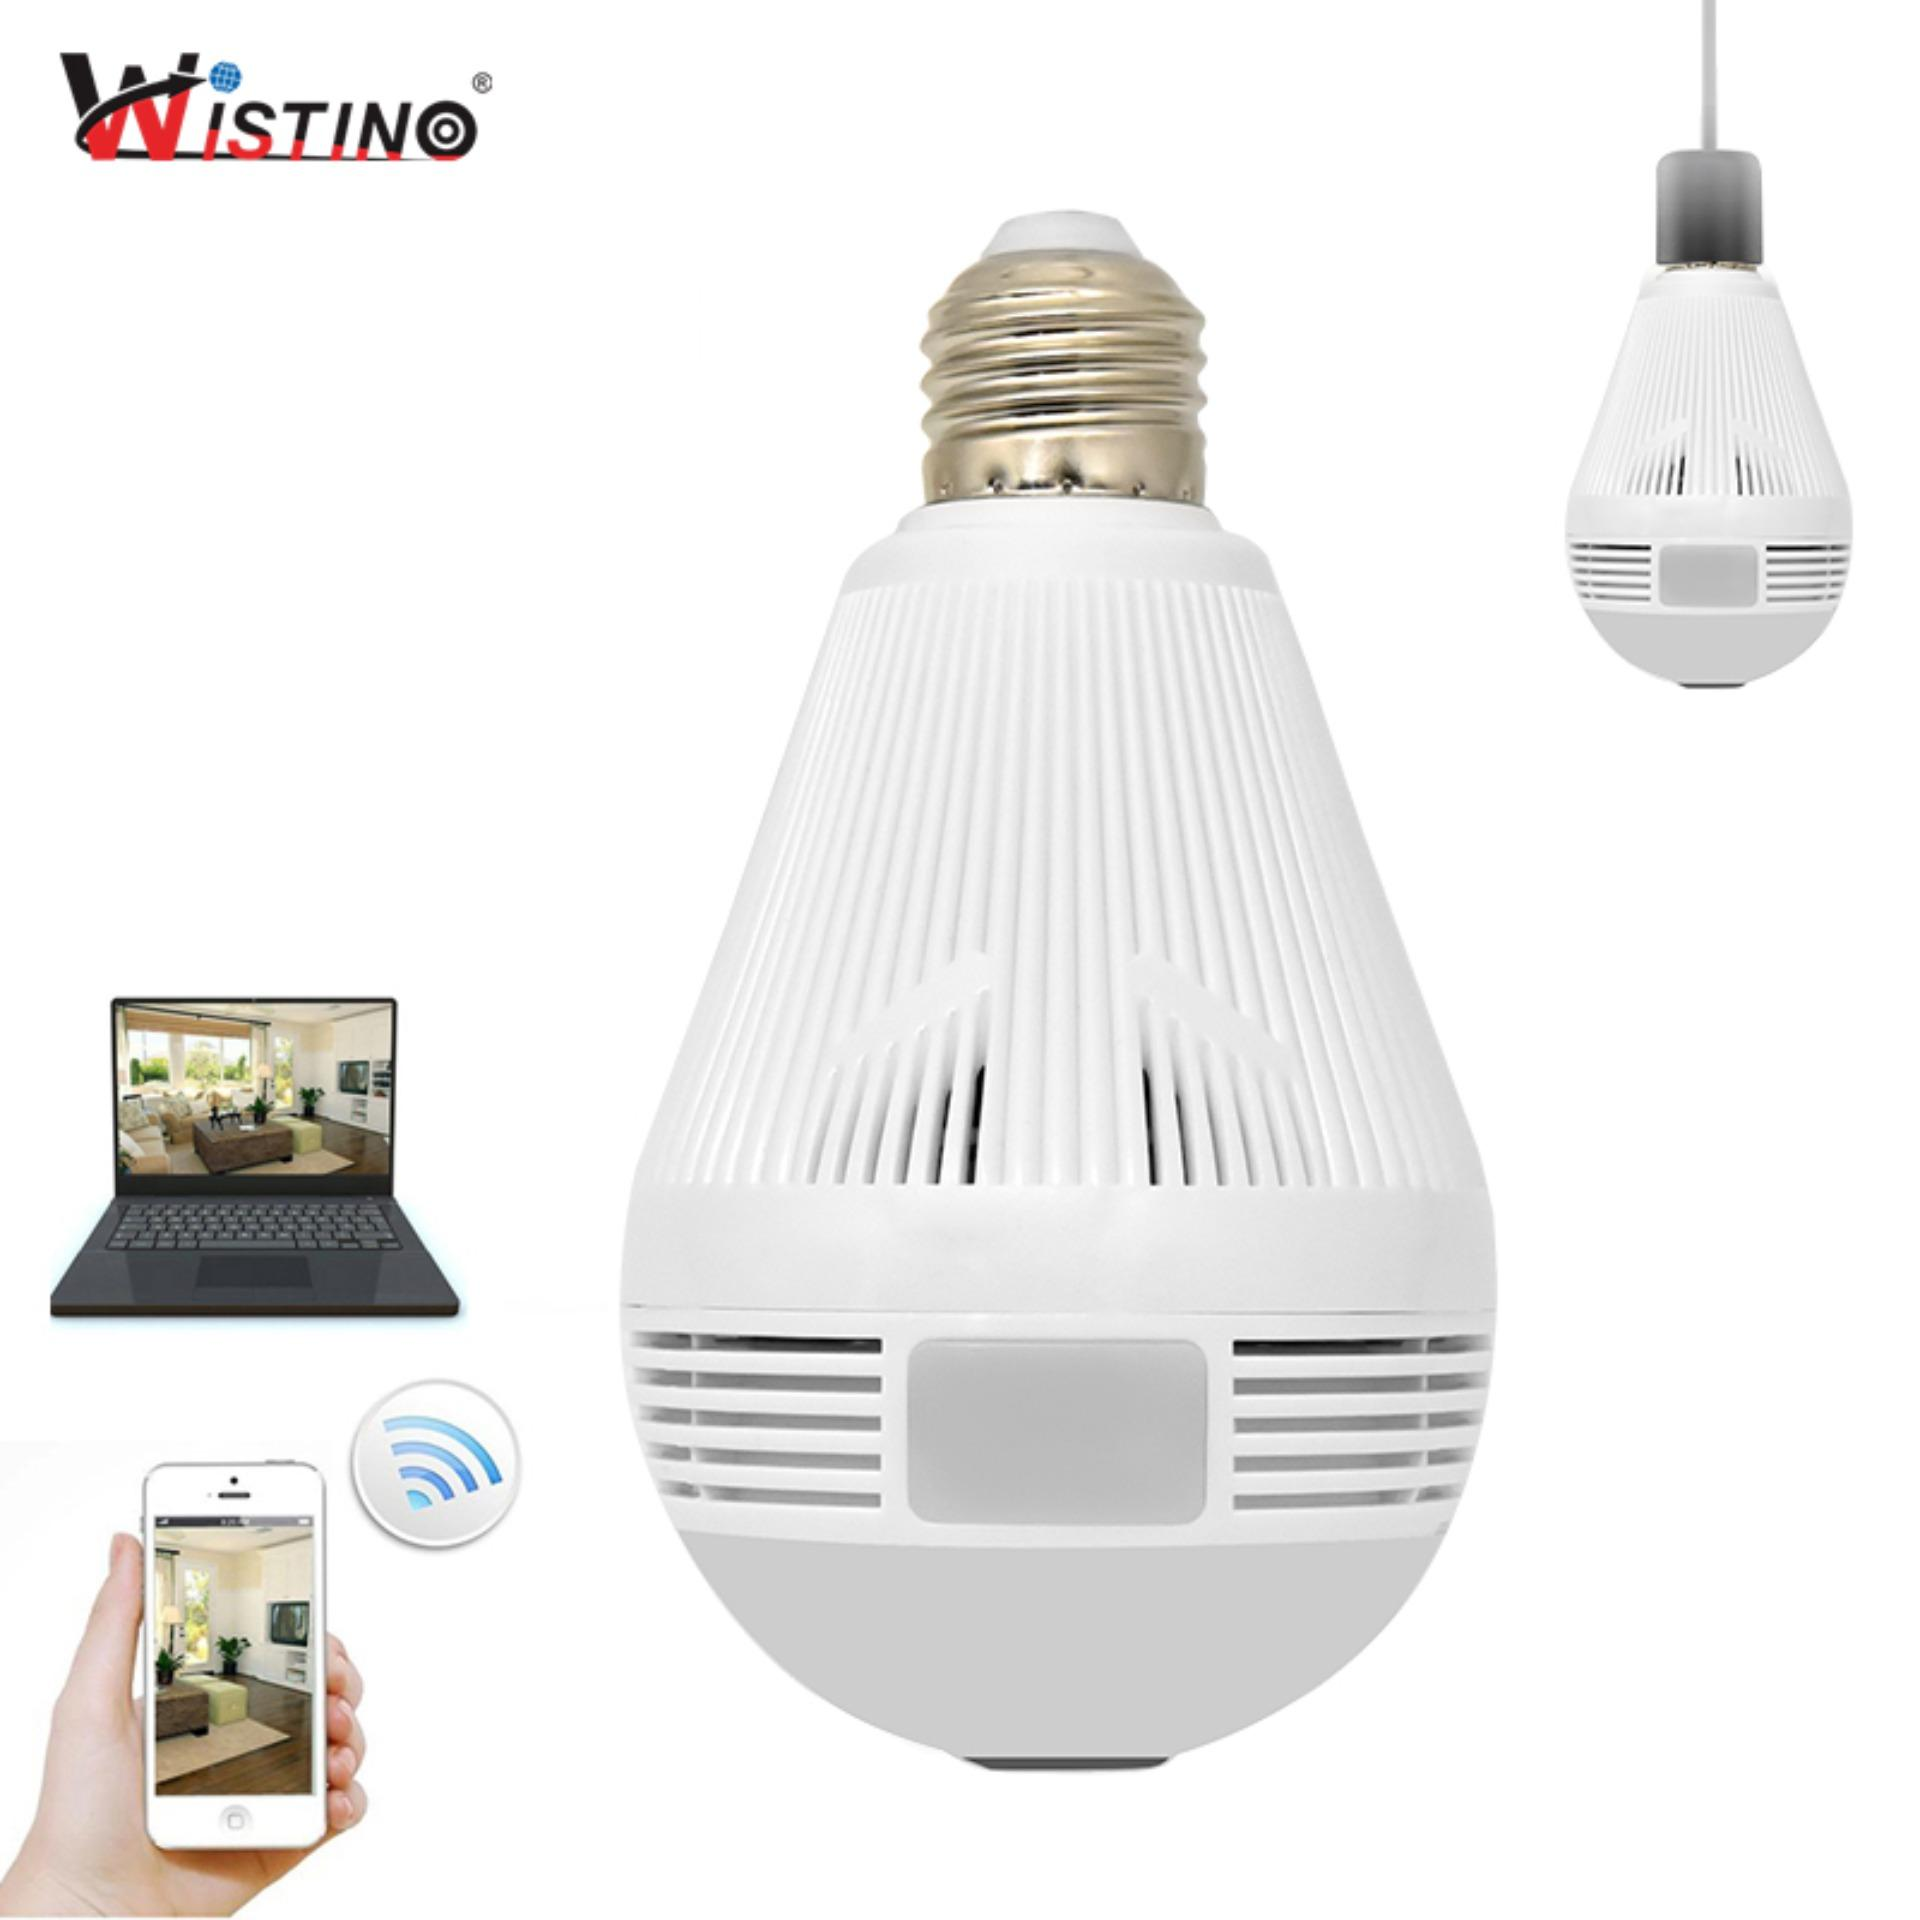 Toko Wistino Cctv 960 P Wireless Ip Kamera Bulb Vr Panoramic Camera Light Wifi Fisheye 360 Derajat Home Surveillance Security Monitor Xmeye Intl Dekat Sini